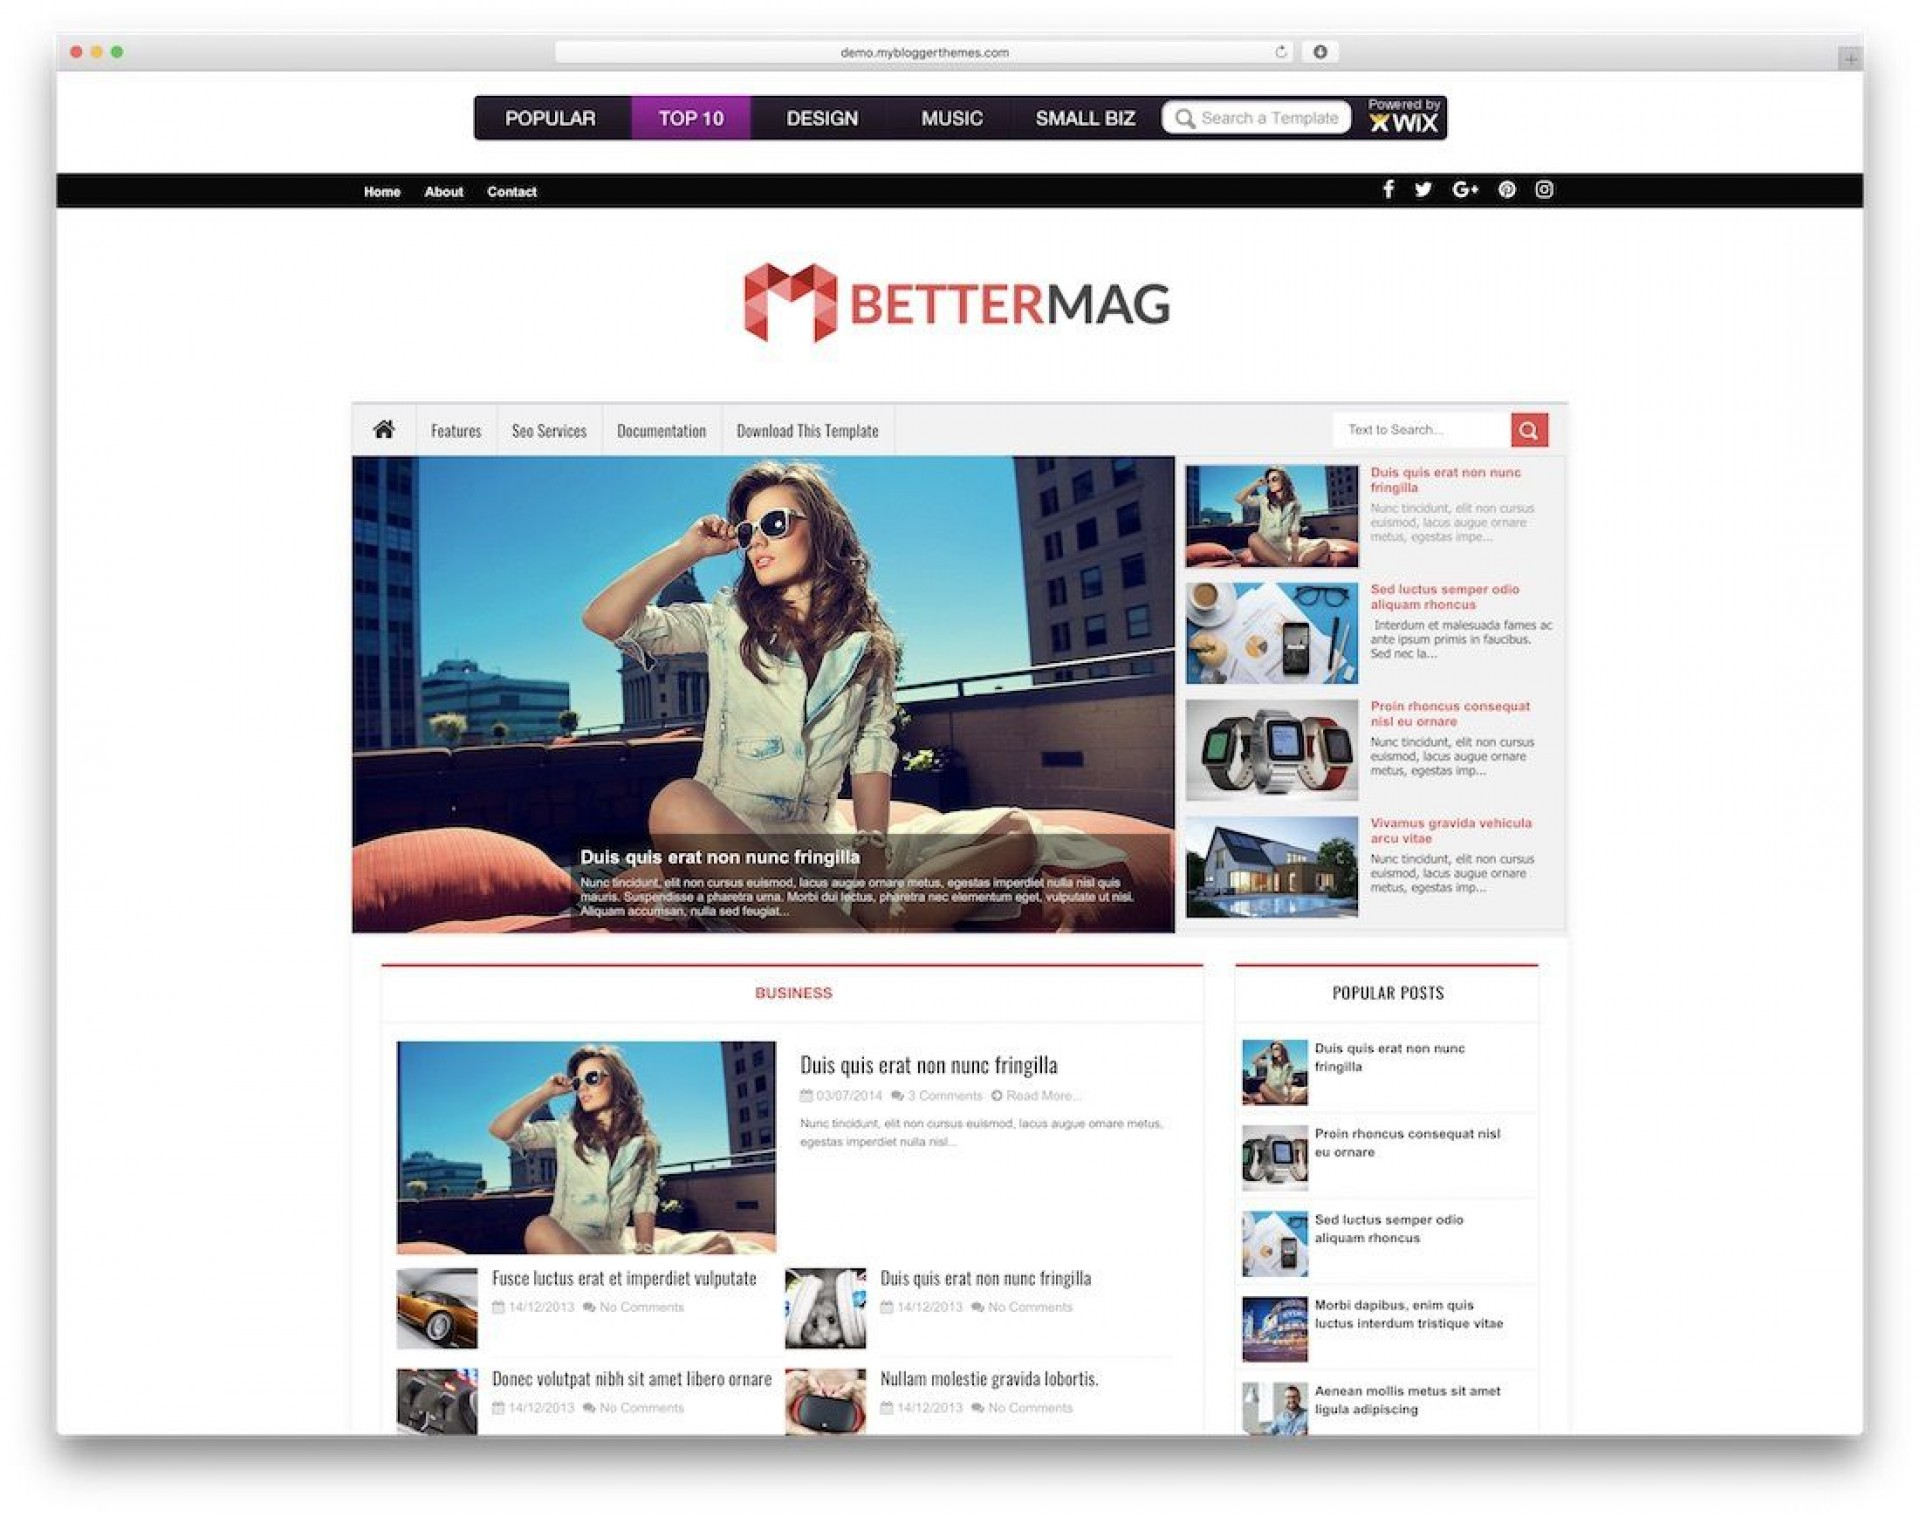 001 Phenomenal Top Free Responsive Blogger Template High Resolution  Templates Best For Education 2020 20191920